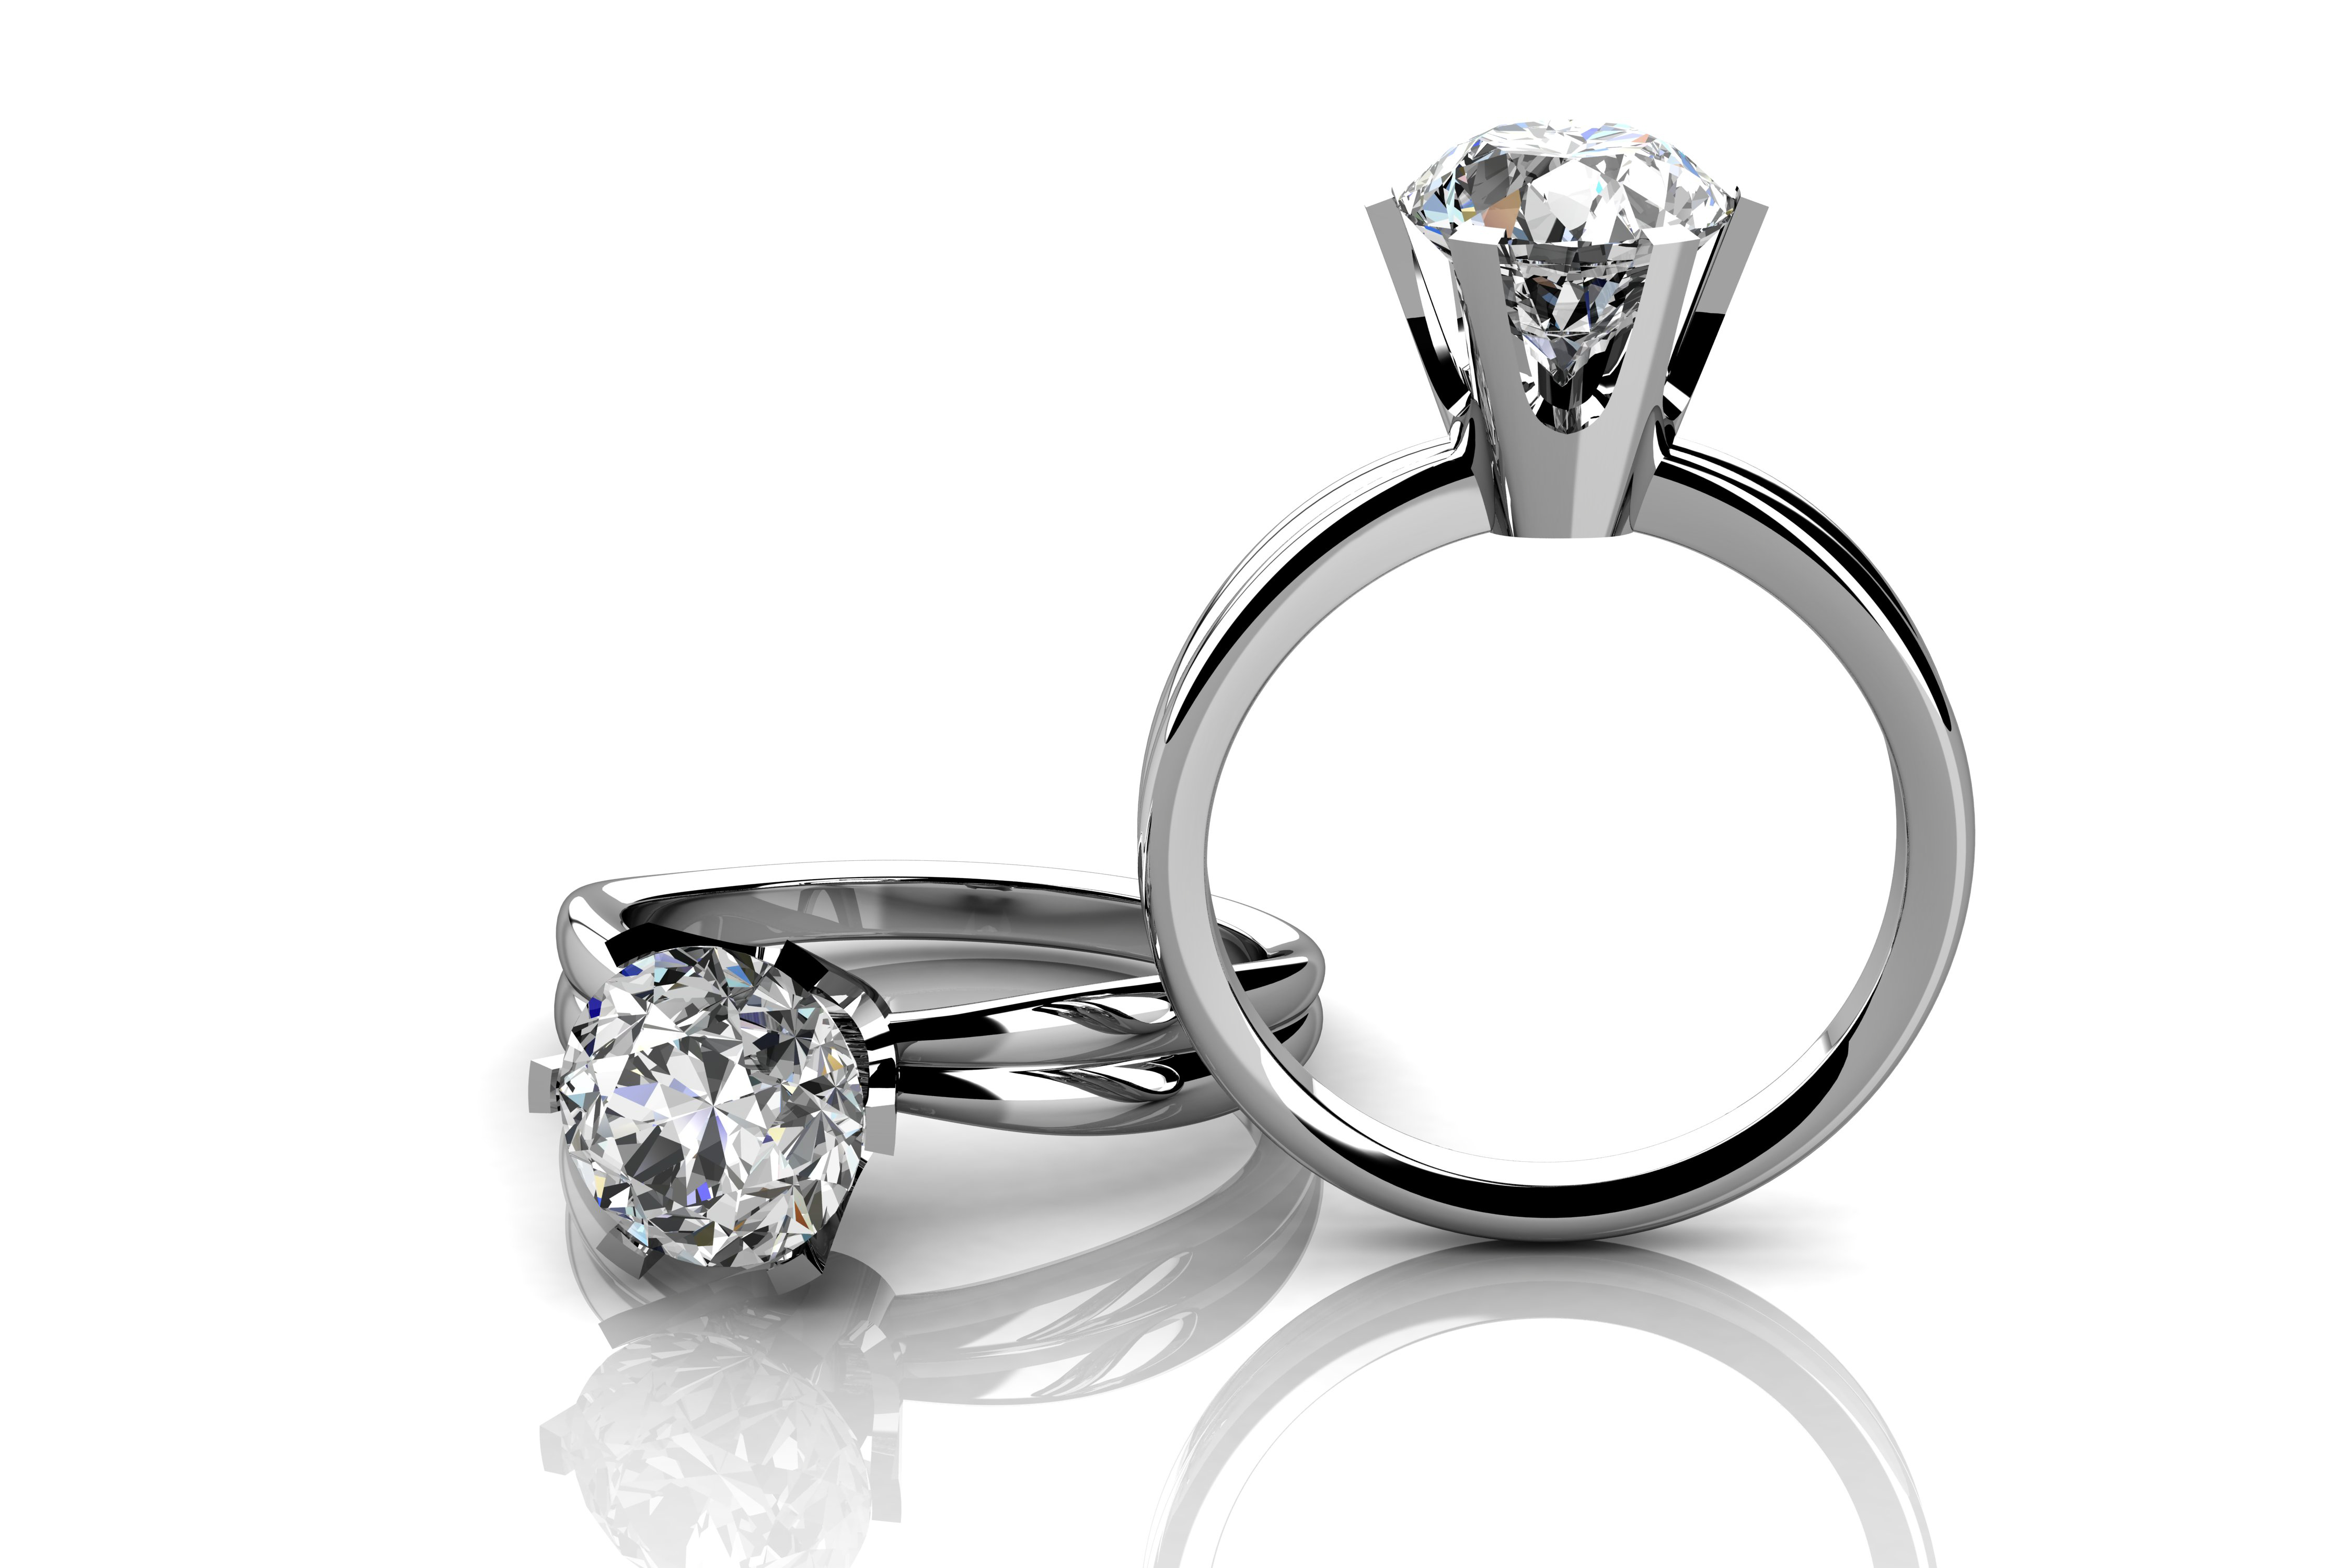 diamond engagement ring wedding is show weddingbee big with how rings new me of a finger attachment on carat